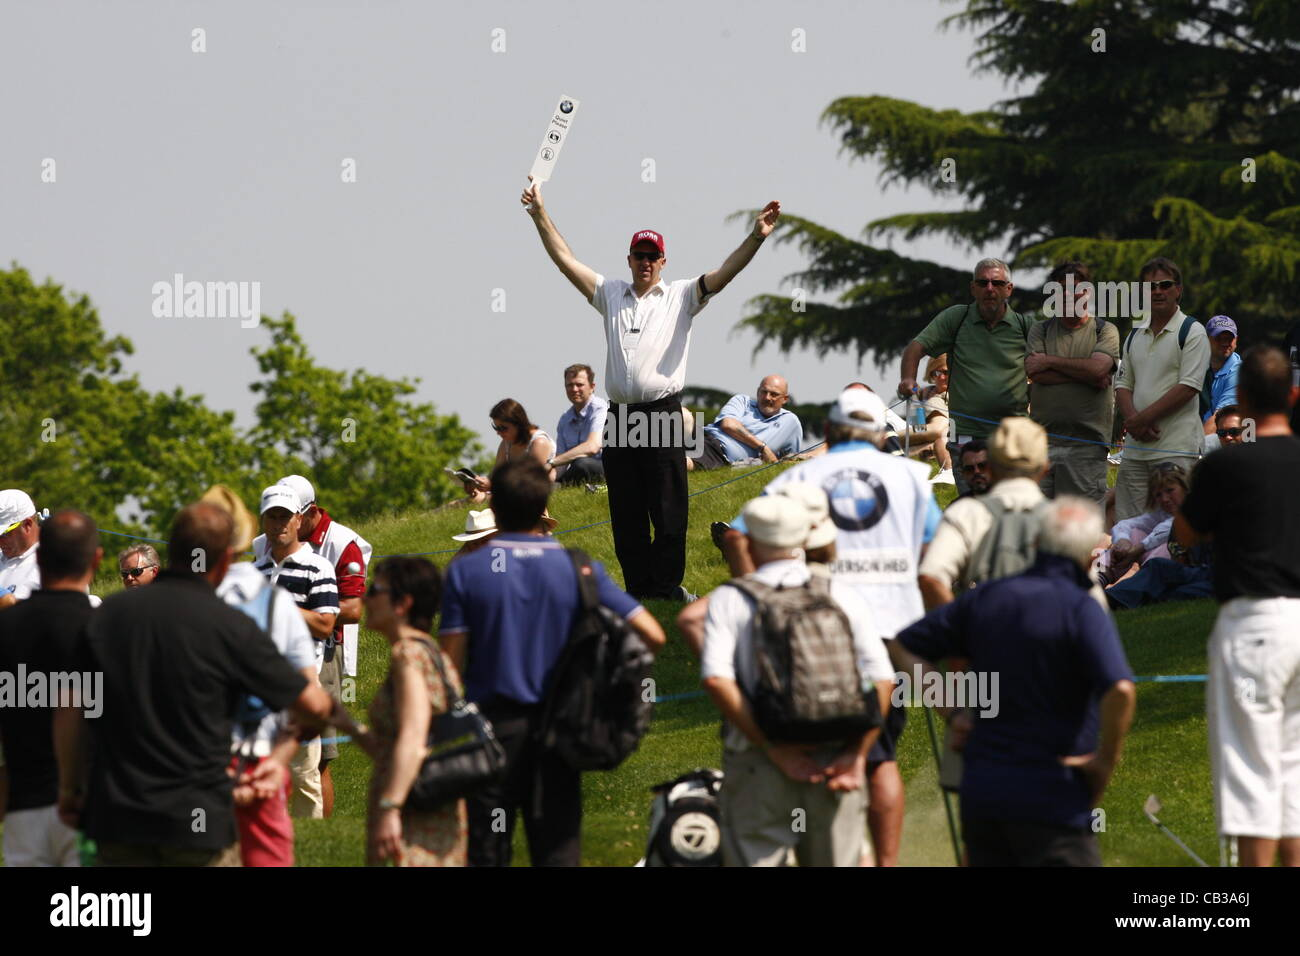 24.05.12 Virginia Water, England.  General views of Wentworth during the BMW PGA Championship on the West Course. - Stock Image